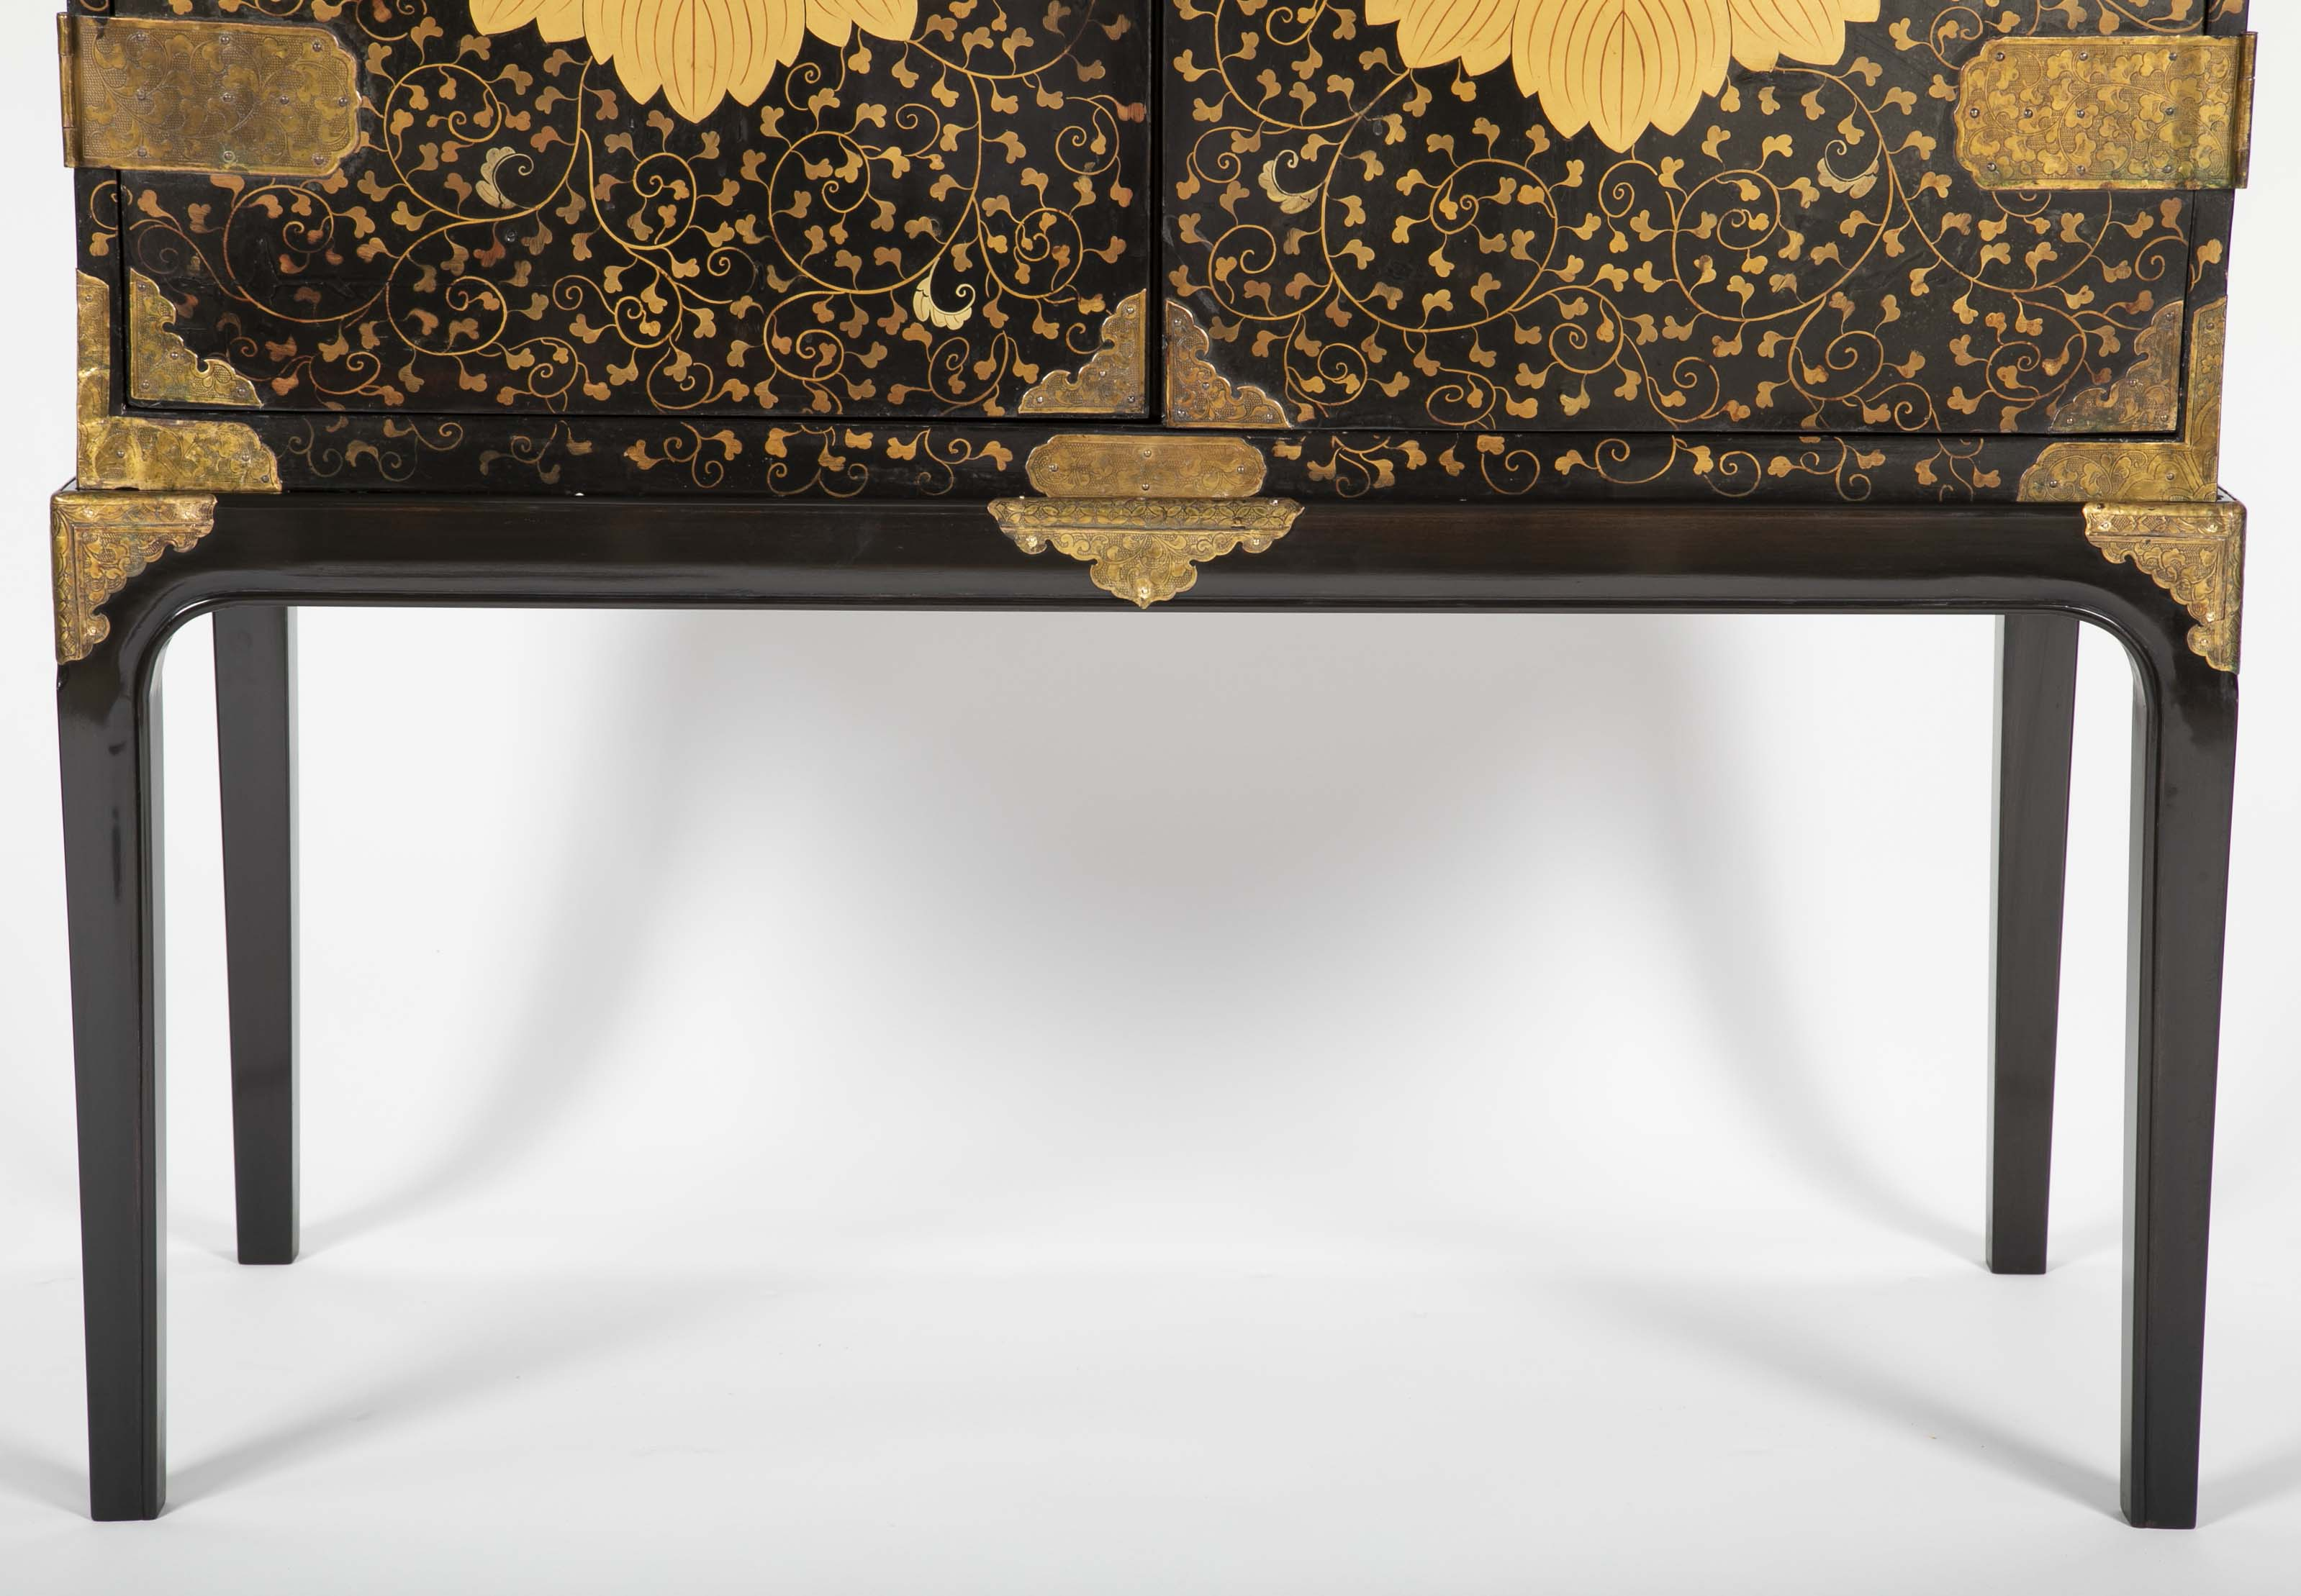 A Large Japanese Black and Gold Lacquered Cabinet on Stand with Gilt Mounts